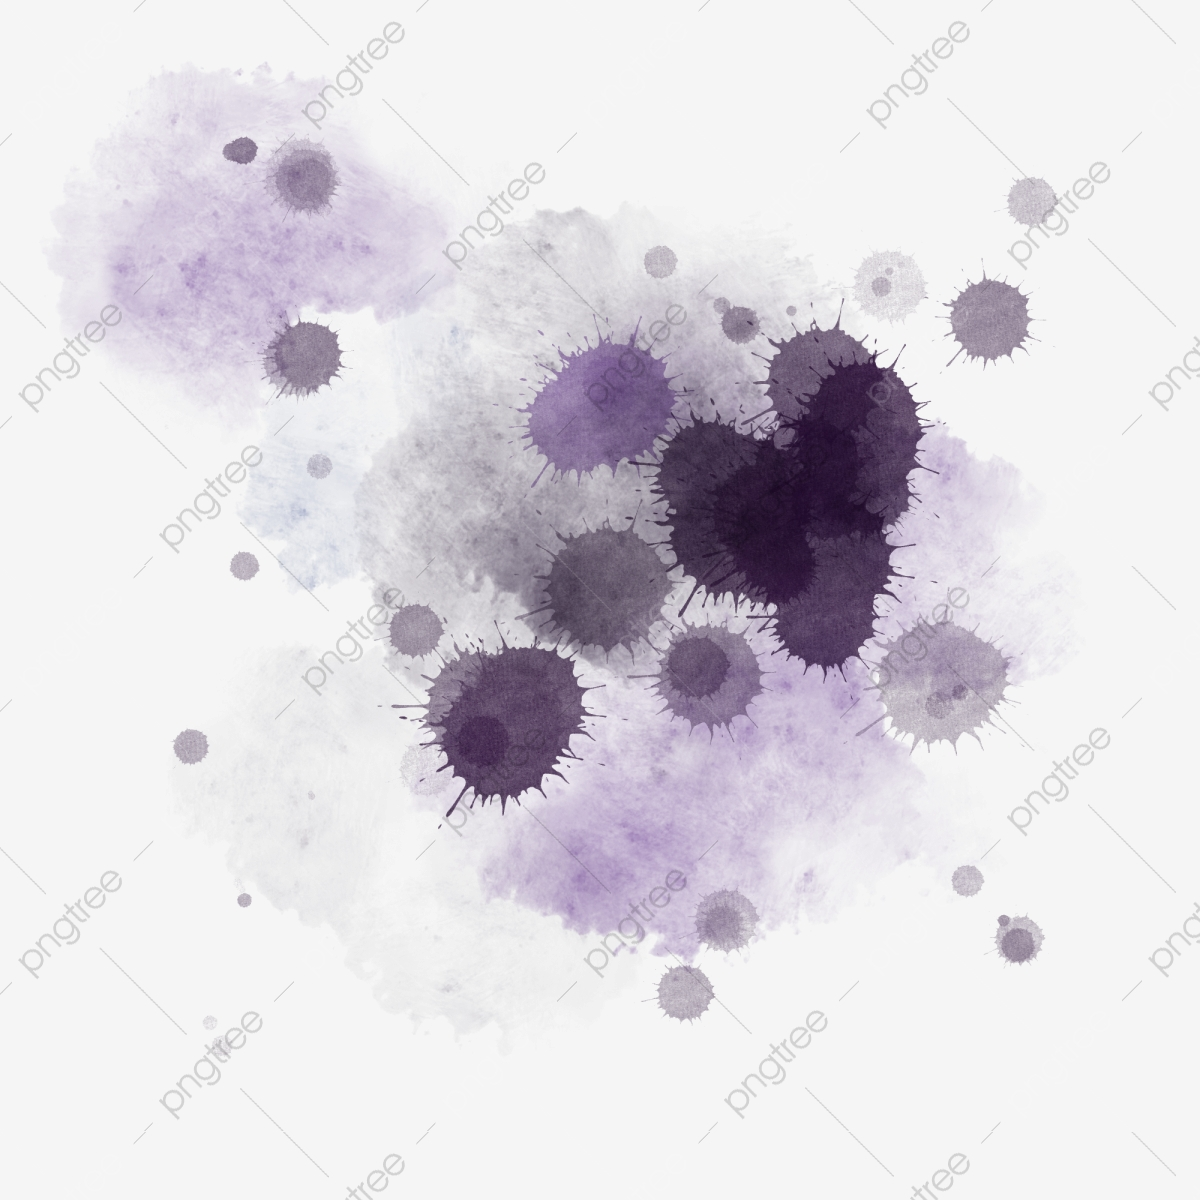 Splattered Ink Decorative Illustration Splashed Ink Ink Decoration Ink Png Transparent Clipart Image And Psd File For Free Download